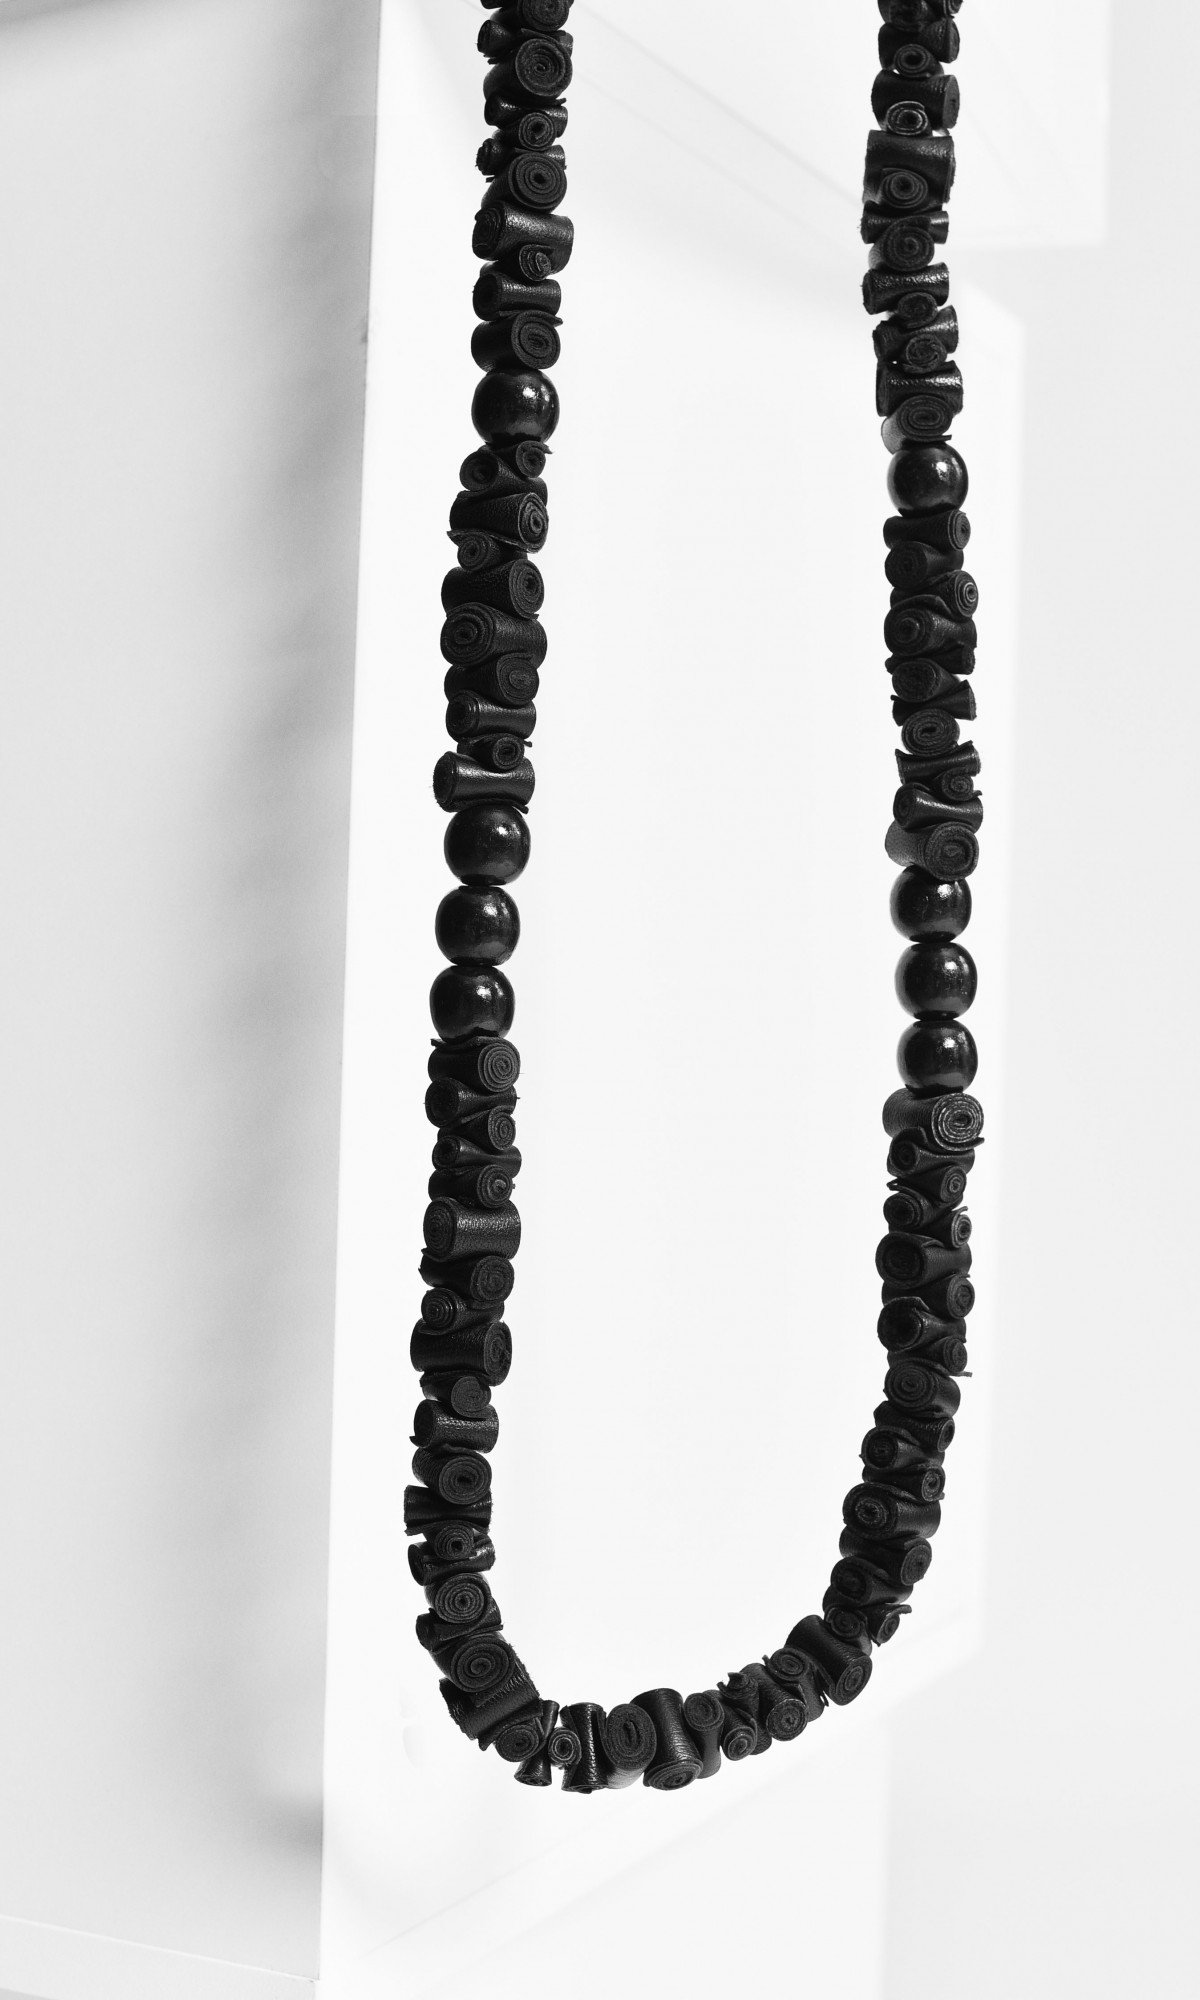 Extravagant Long Black Genuine Leather Necklace A16862